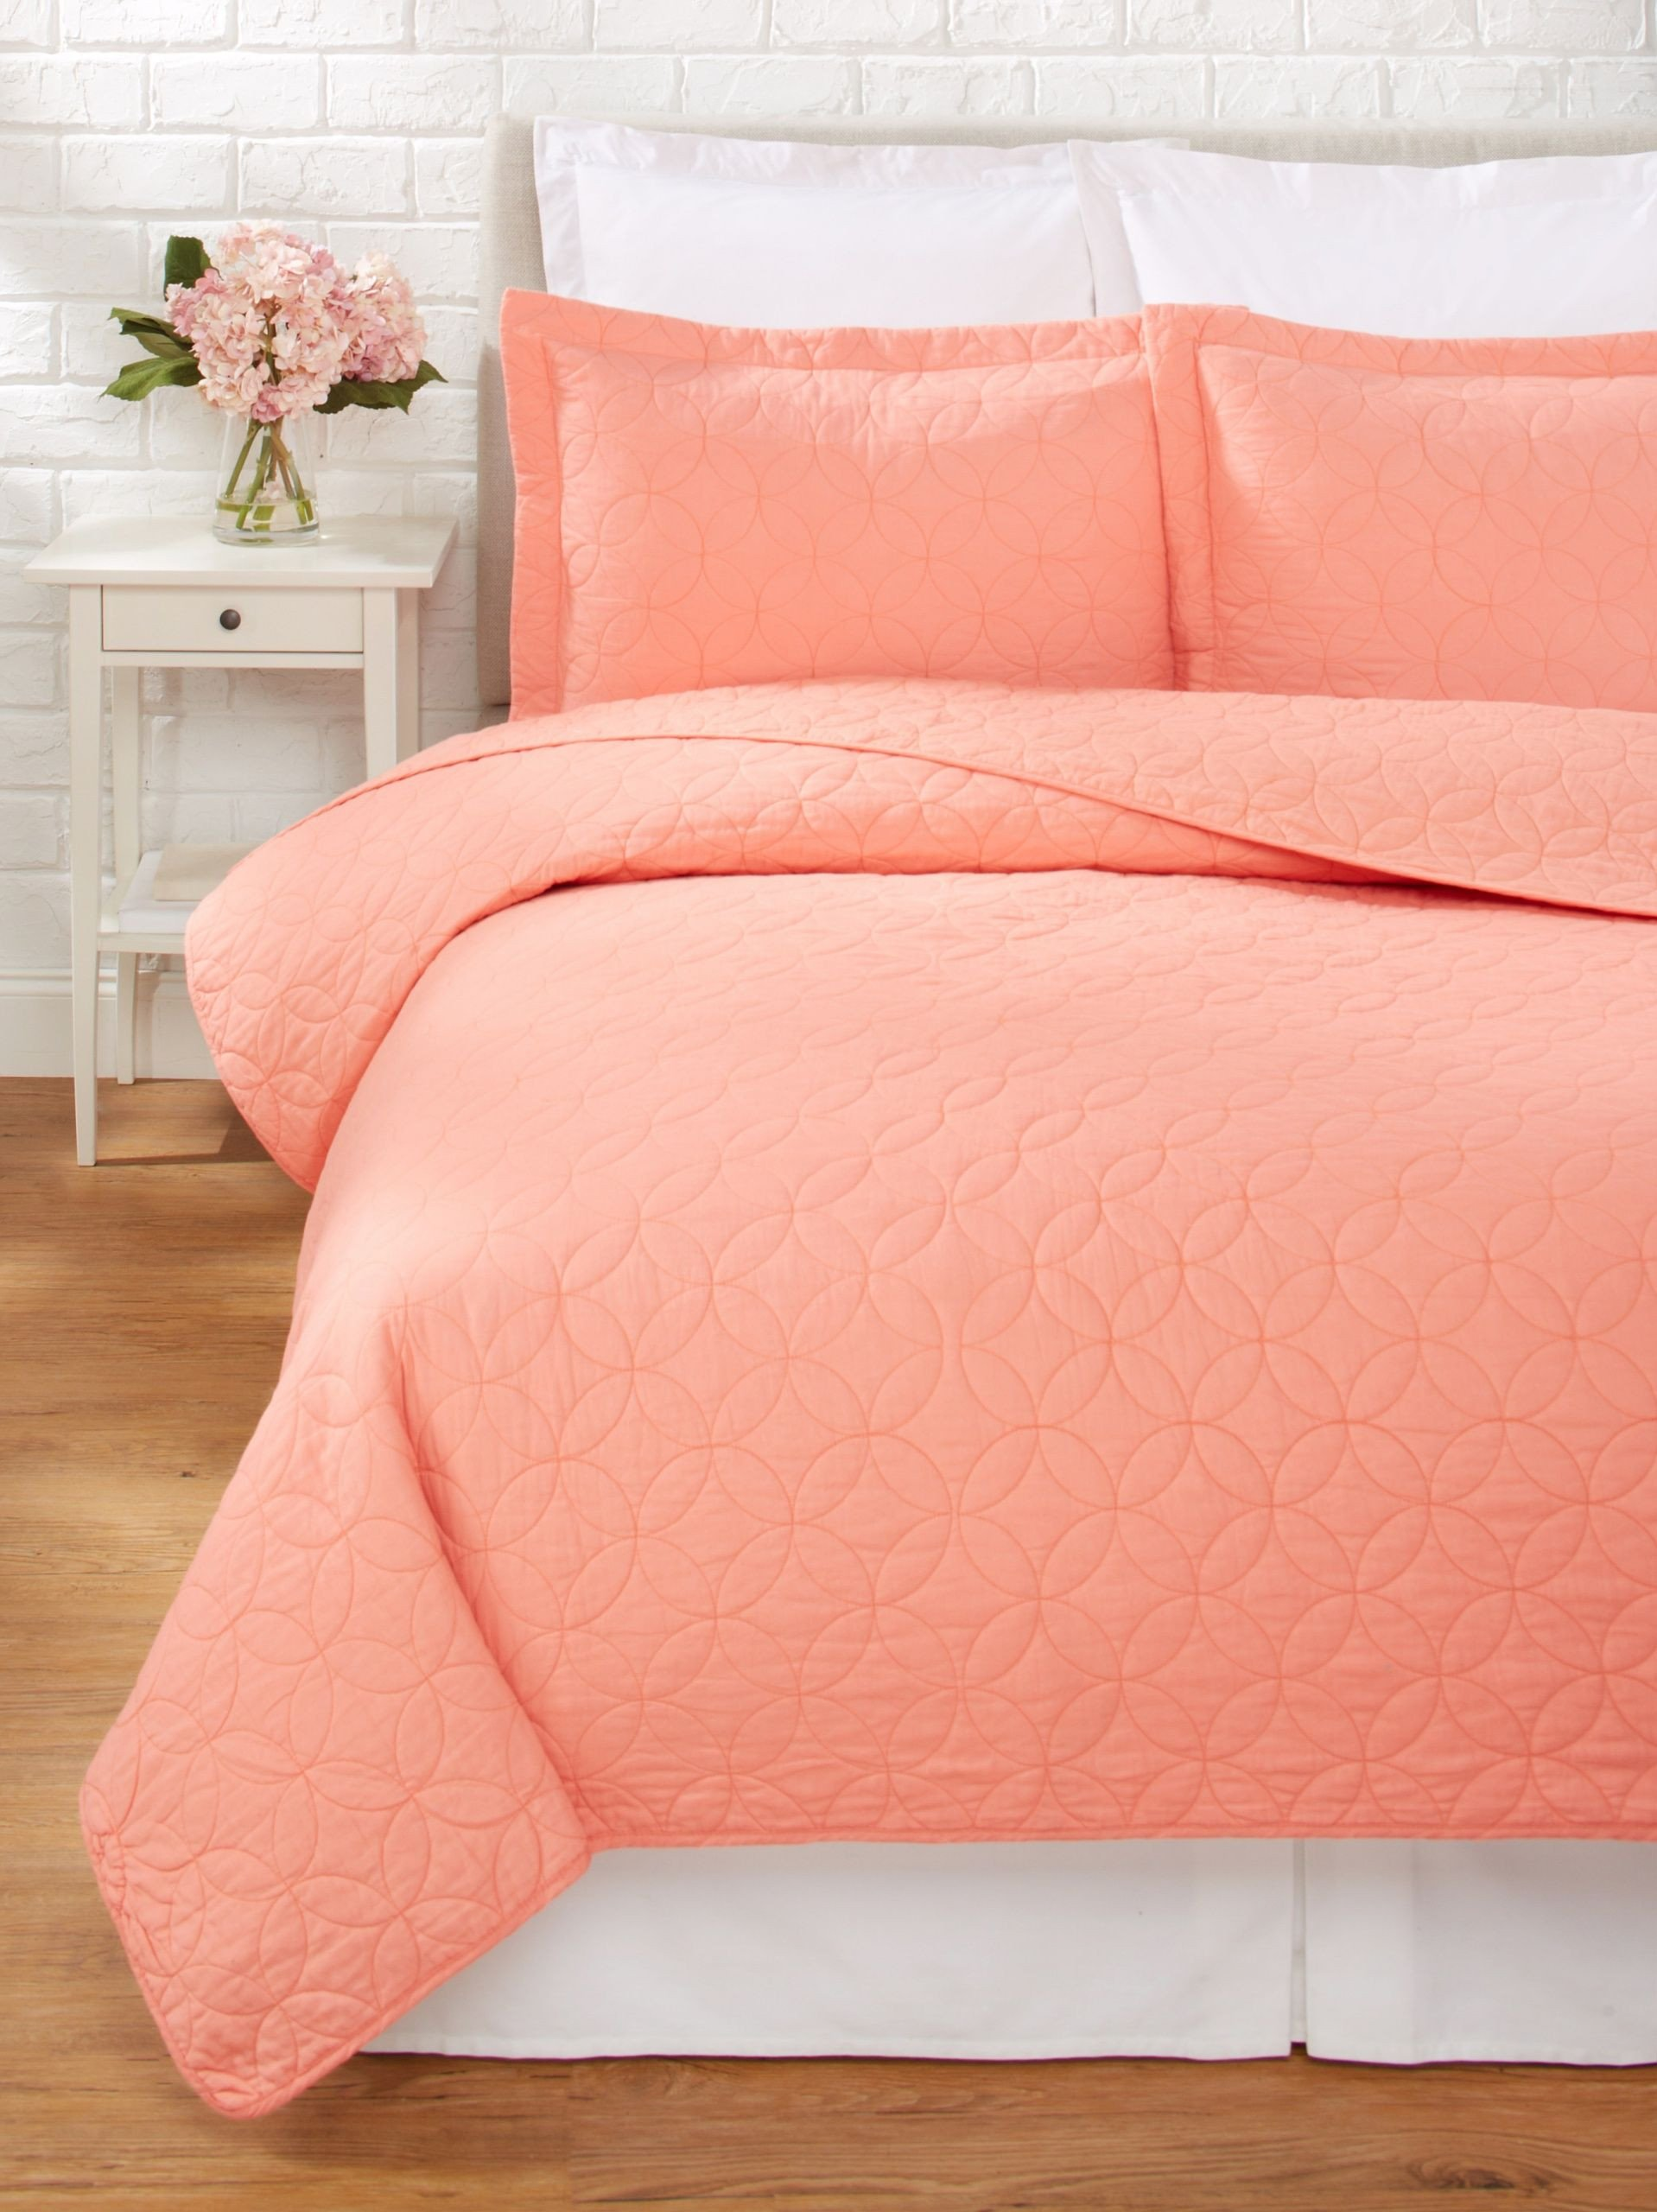 Laura ashley Bedroom Set Unique Laura ashley solid Quilt Set Coral Add Color to Your